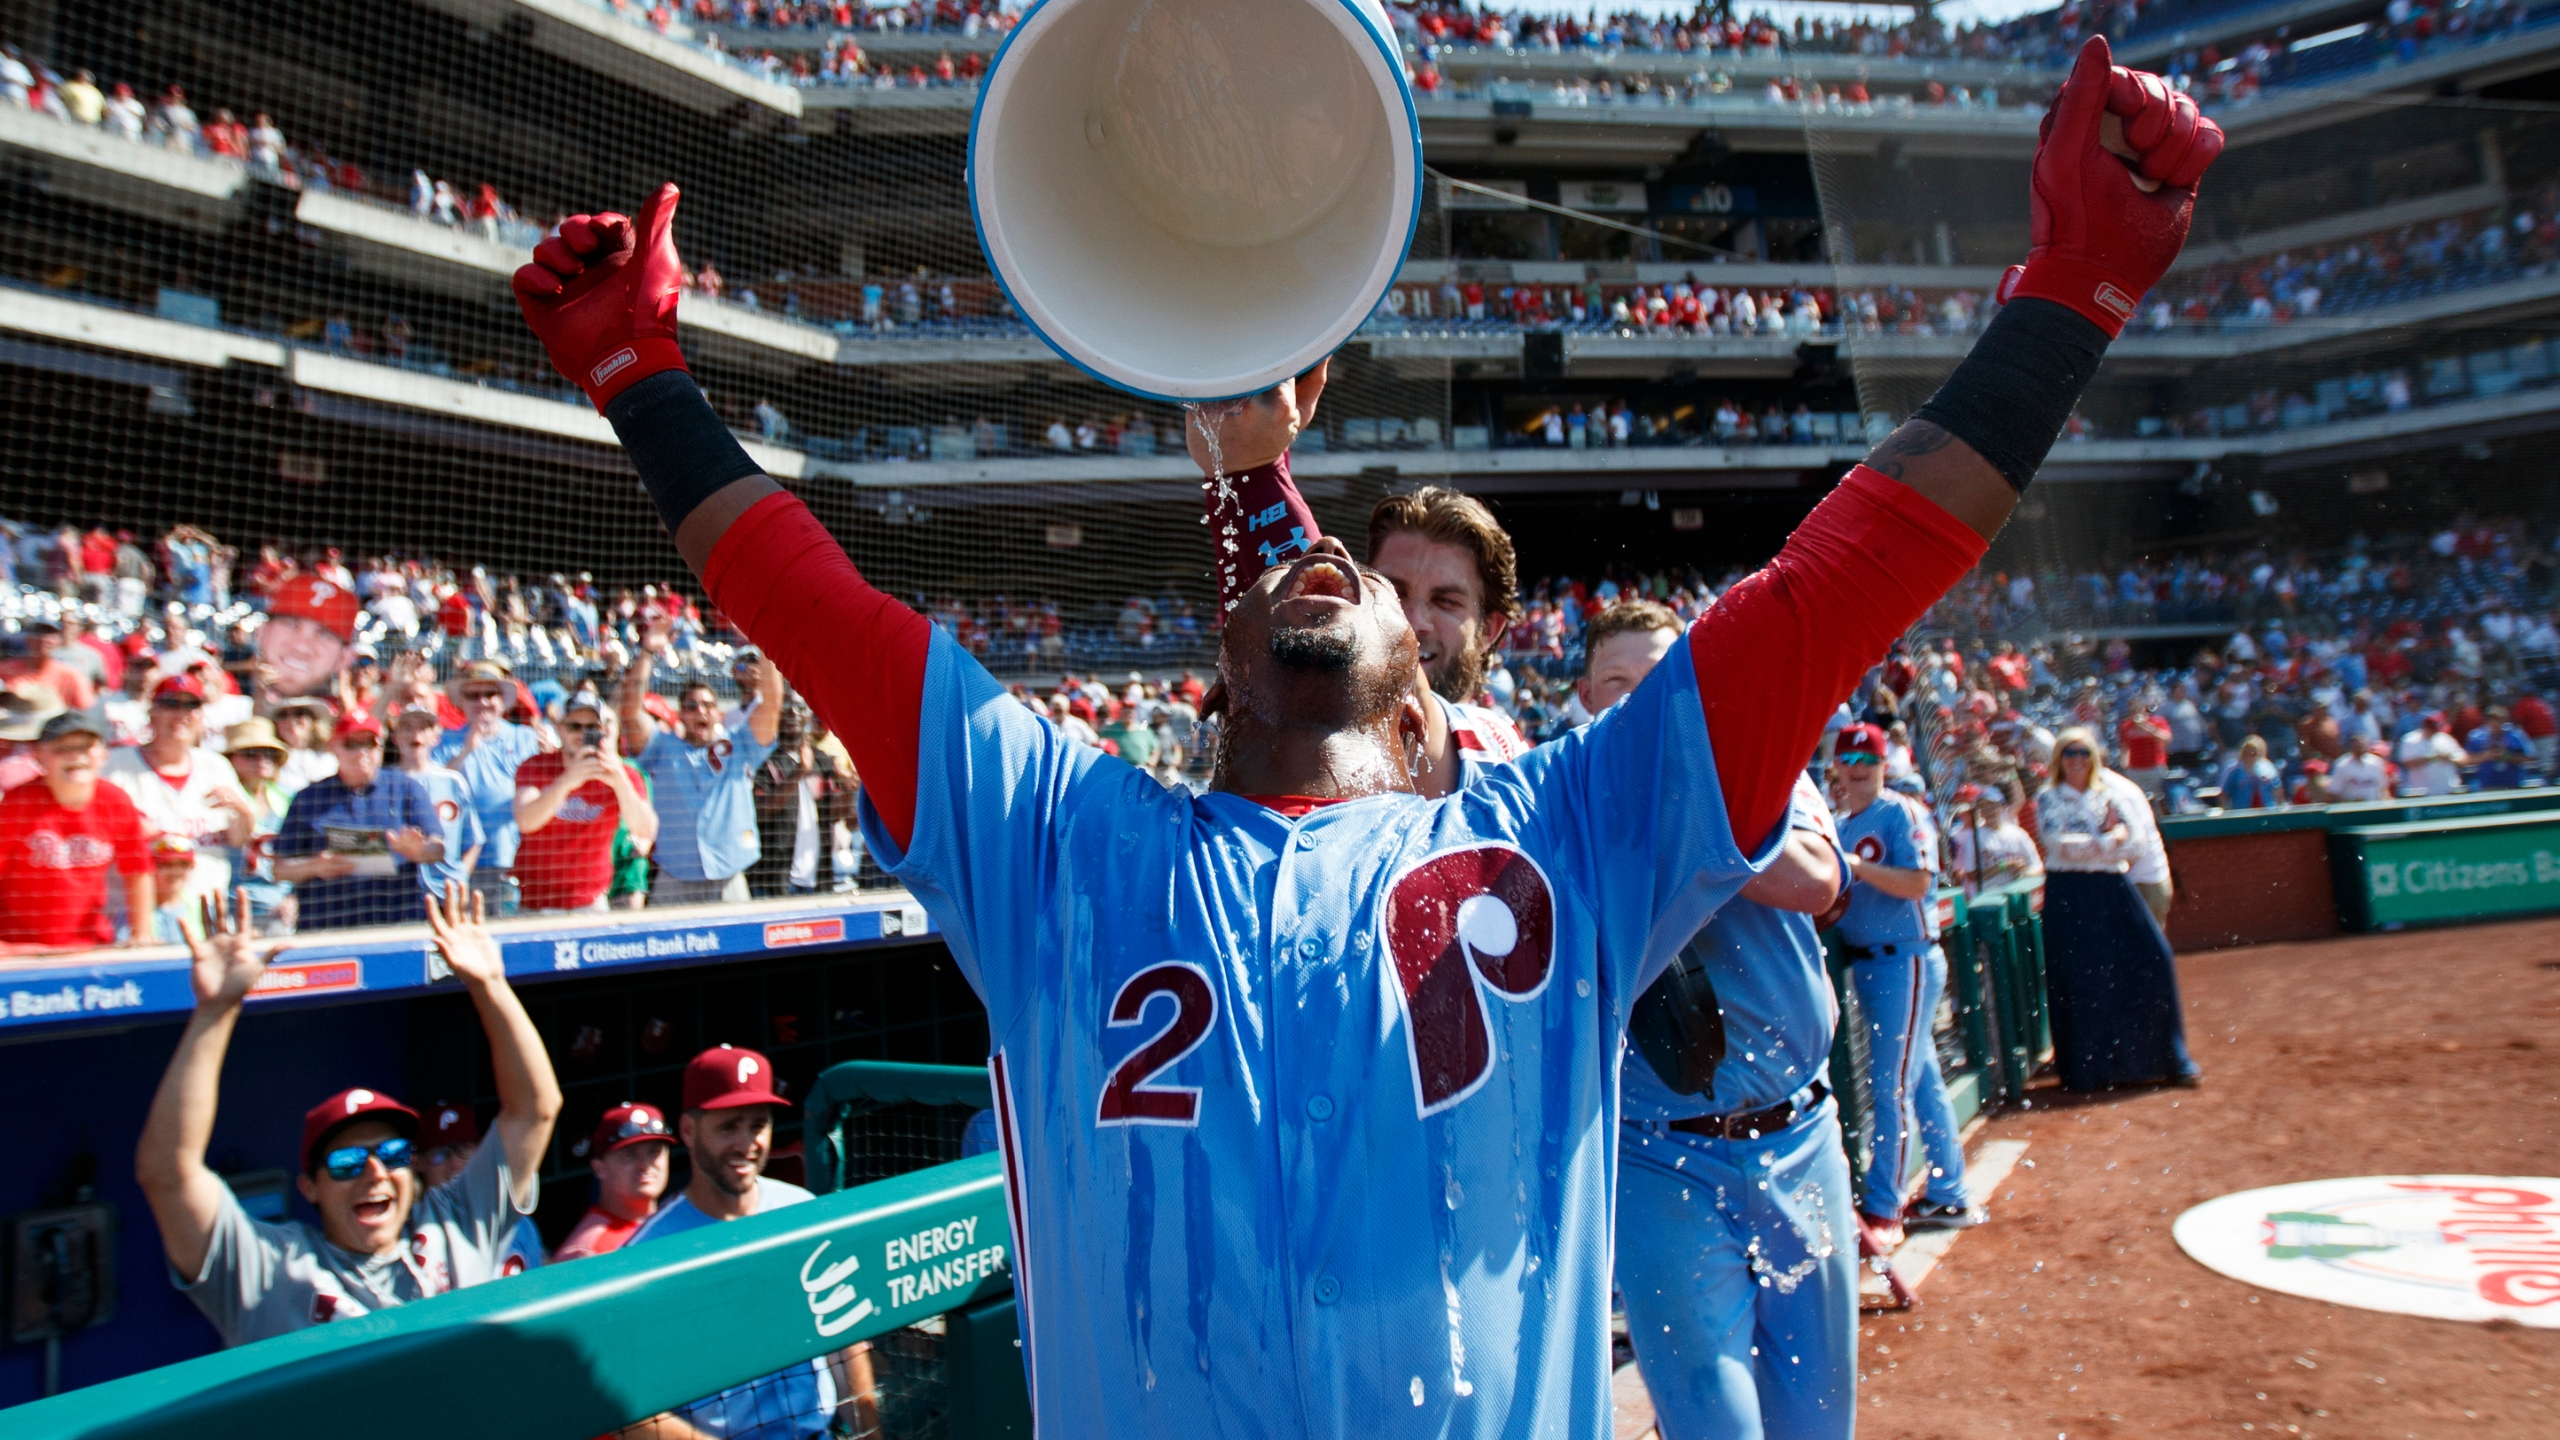 Bamboozled Segura S 3 Run Hr Lifts Phillies Over Mets 6 3